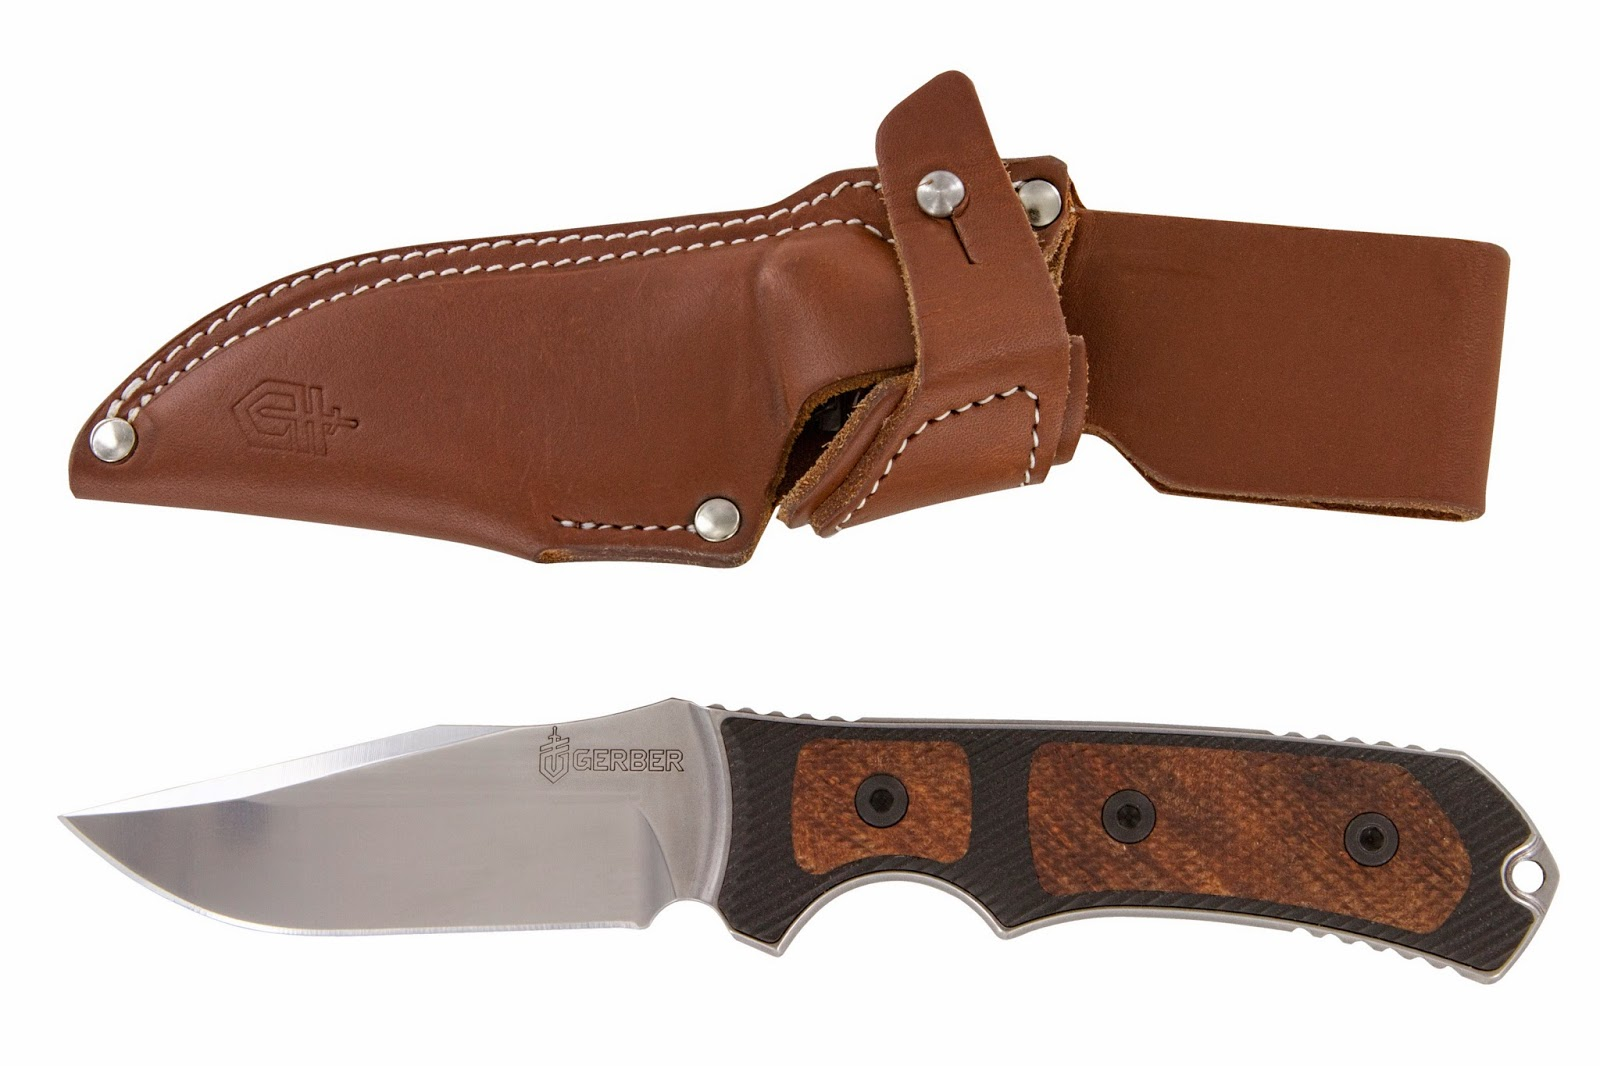 Rocky mountain bushcraft shot show 2014 first impression review - Shot Show 2014 Gerber Releases Made In Usa Limited Edition Legend Cpm S35vn Hunting Knife To Celebrate 75th Anniversary